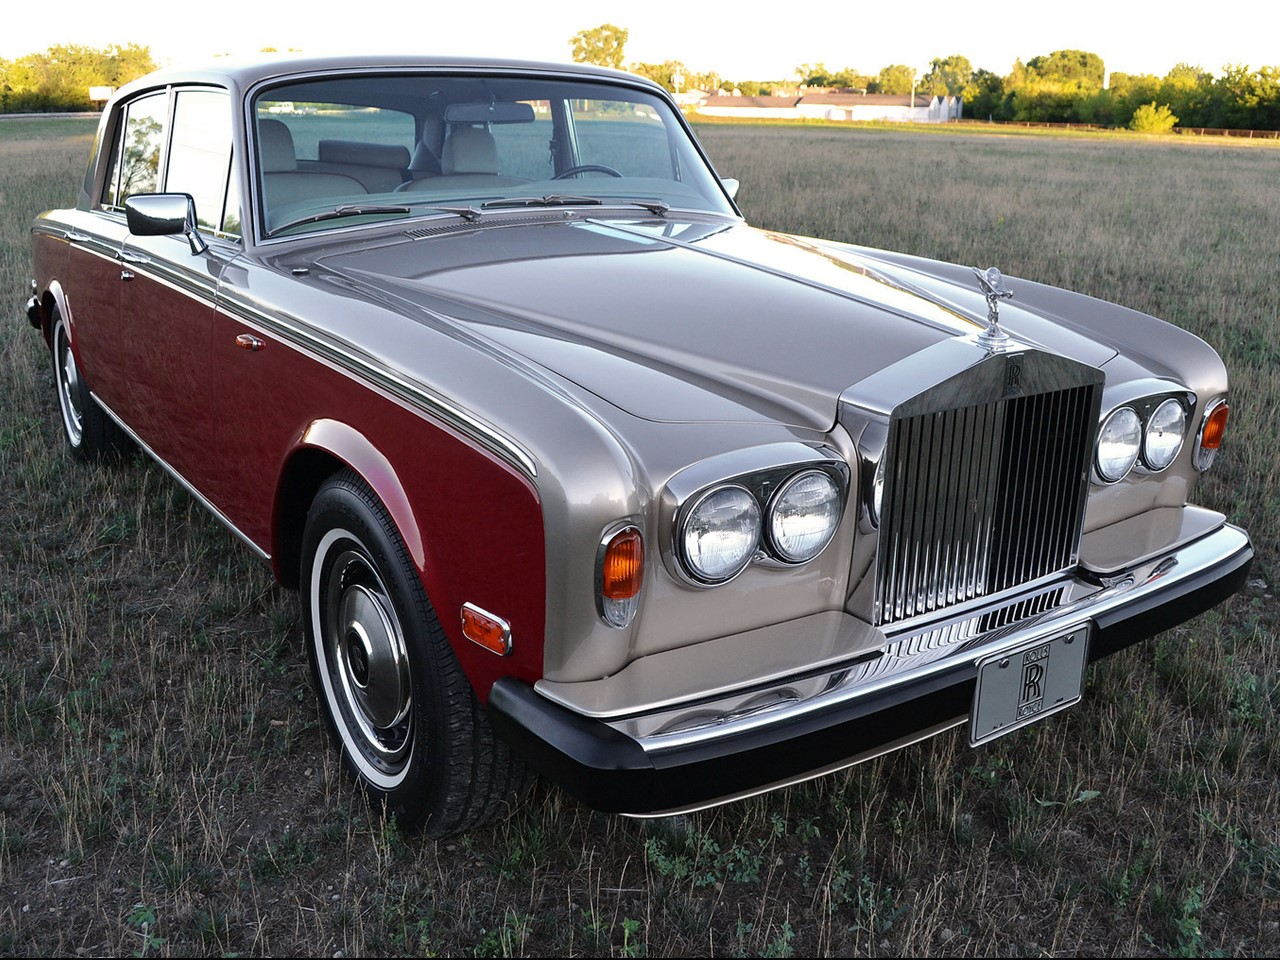 1980 rolls royce silver shadow ii notoriousluxury. Black Bedroom Furniture Sets. Home Design Ideas